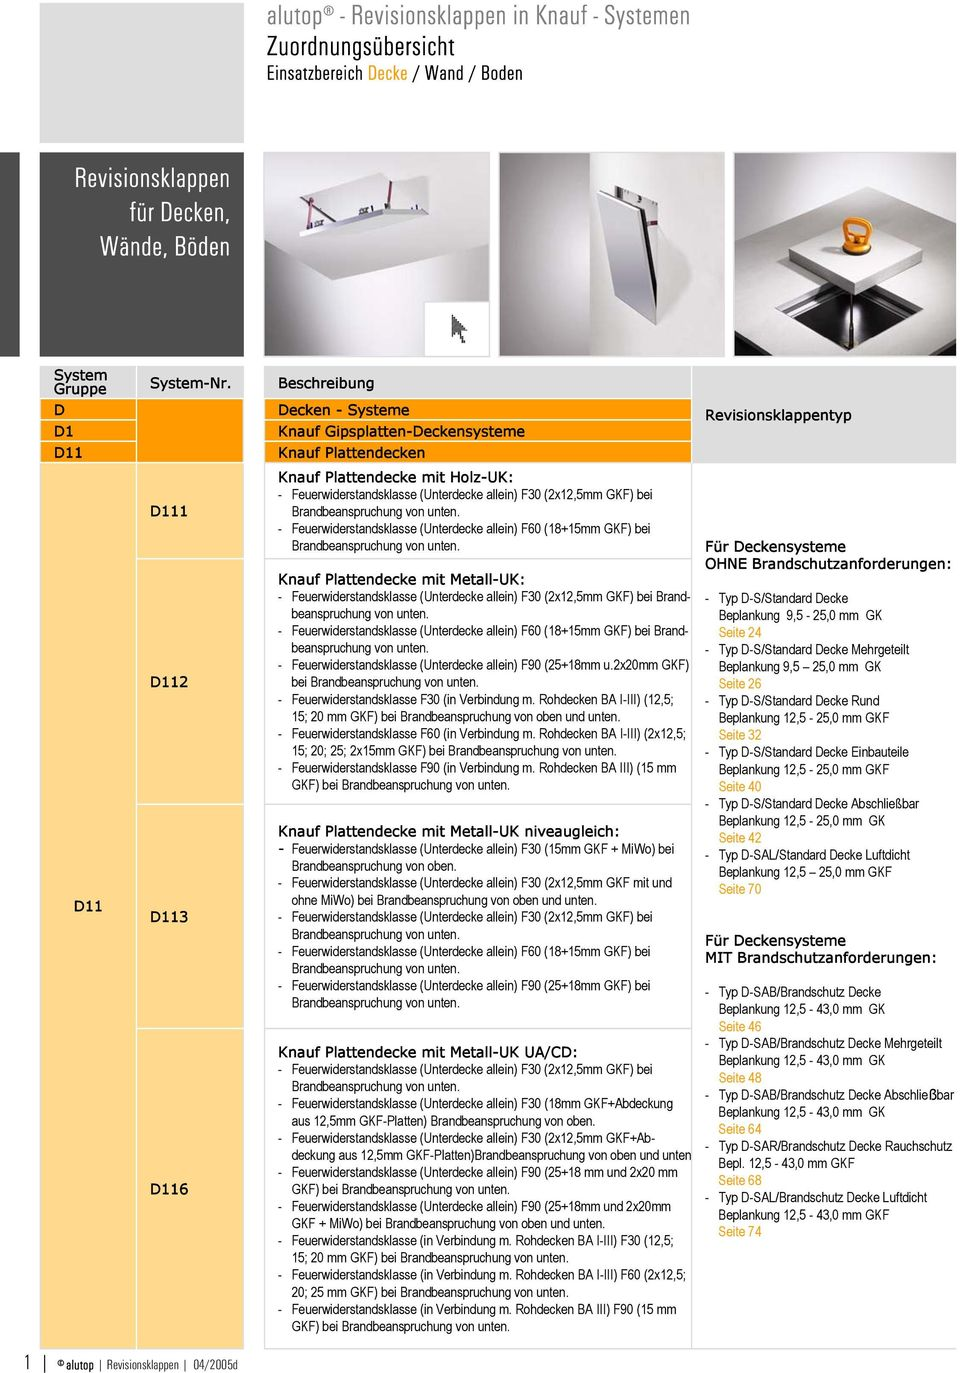 alutop revisionsklappen in knauf systemen zuordnungs bersicht pdf. Black Bedroom Furniture Sets. Home Design Ideas